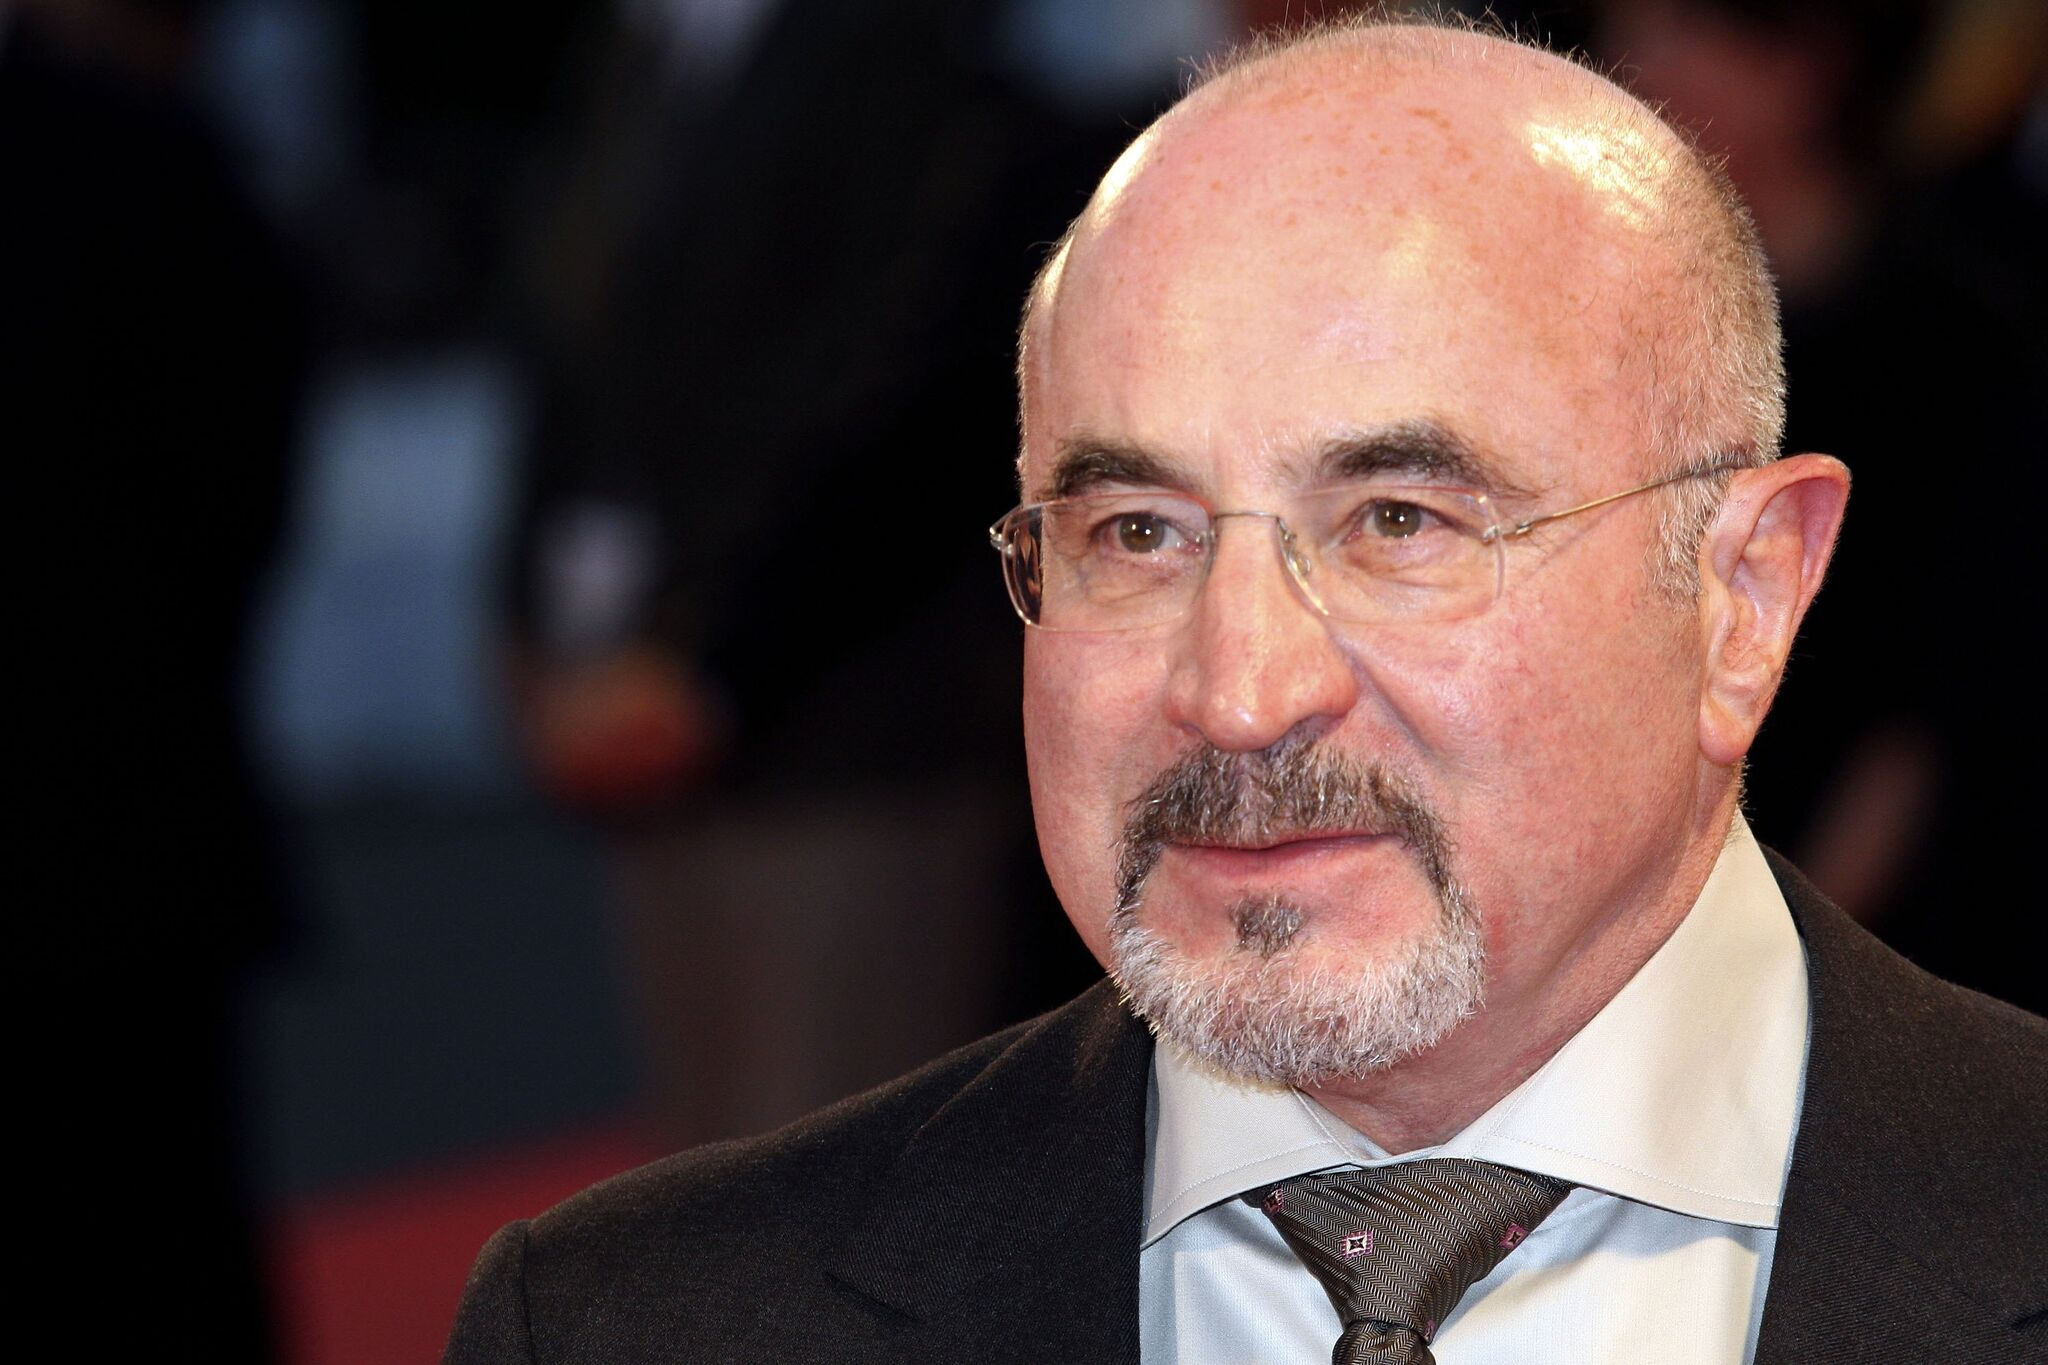 Bob Hoskins attends the Premiere of 'Hollywoodland' on the second day of the 63rd Venice Film Festival | Getty Images